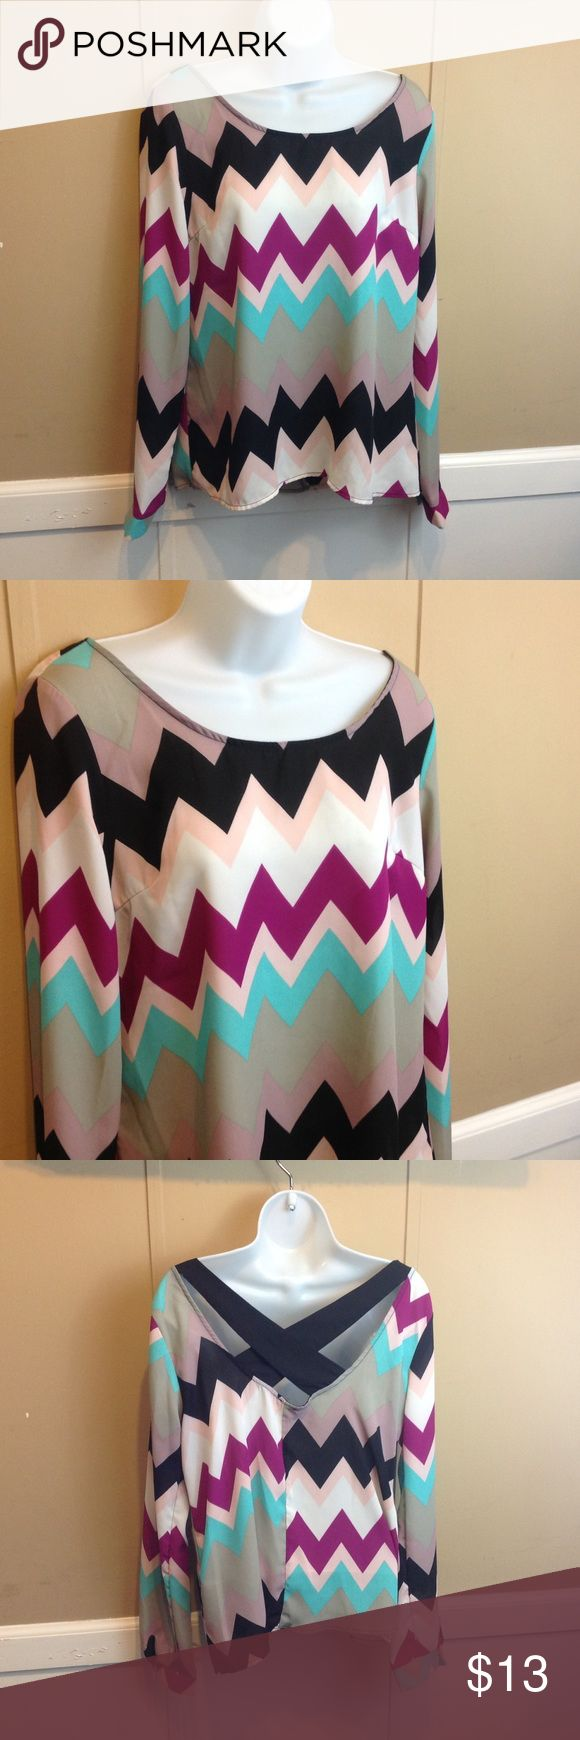 "Charlotte Russe Chevron Print Blouse Maker: charlotte russe ♥ Material: Polyester ♥ Color: Multi ♥ Measured Size: Pit to pit- 20"" Pit to cuff- 18"" Shoulder to waist-25""  ♥ Tag Size: Medium ♥ Actual Size: Medium PLEASE CHECK YOUR ACTUAL MEASUREMENTS TO MAKE SURE IT IS THE RIGHT SIZE! THANKS! ♥ Condition: Great ♥ Item #: (office use only) 600   Follow us on Instagram and facebook for coupon codes!  INSTAGRAM-thehausofvintage1984 Facebook- intergalactic haus of vintage 1984 or…"